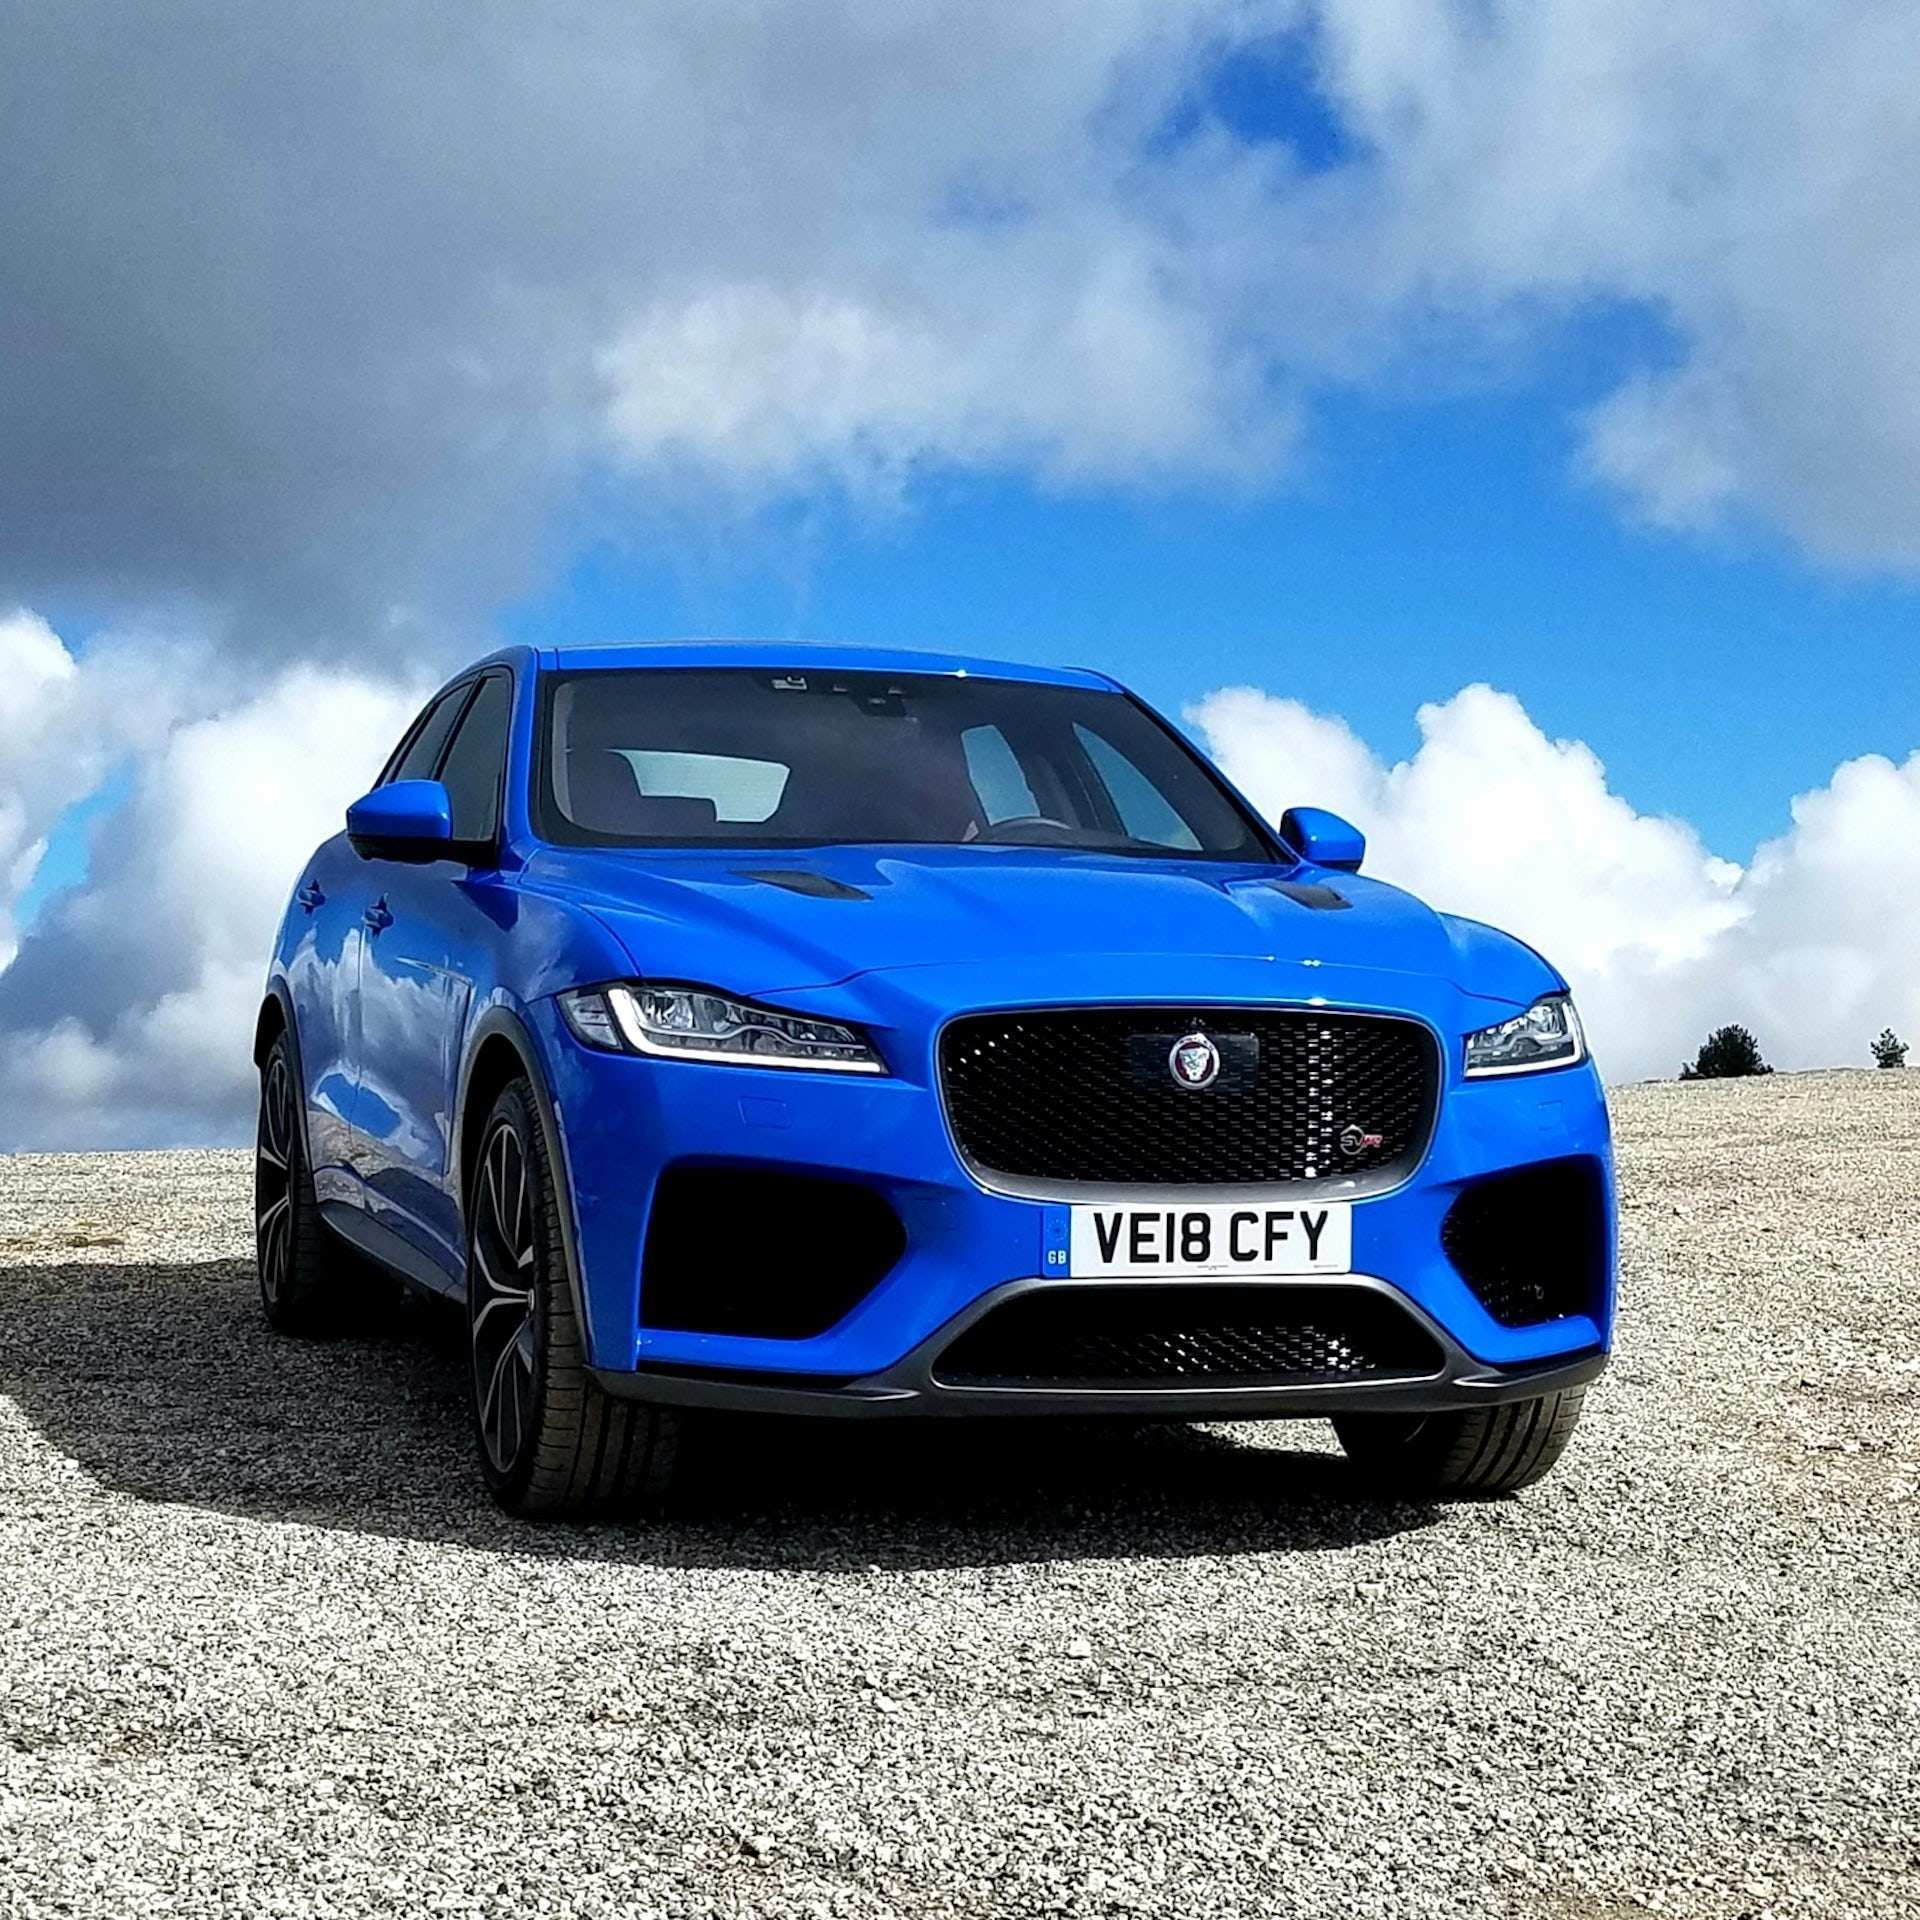 44 Concept of The 2019 Jaguar F Pace Interior First Drive Redesign and Concept with The 2019 Jaguar F Pace Interior First Drive